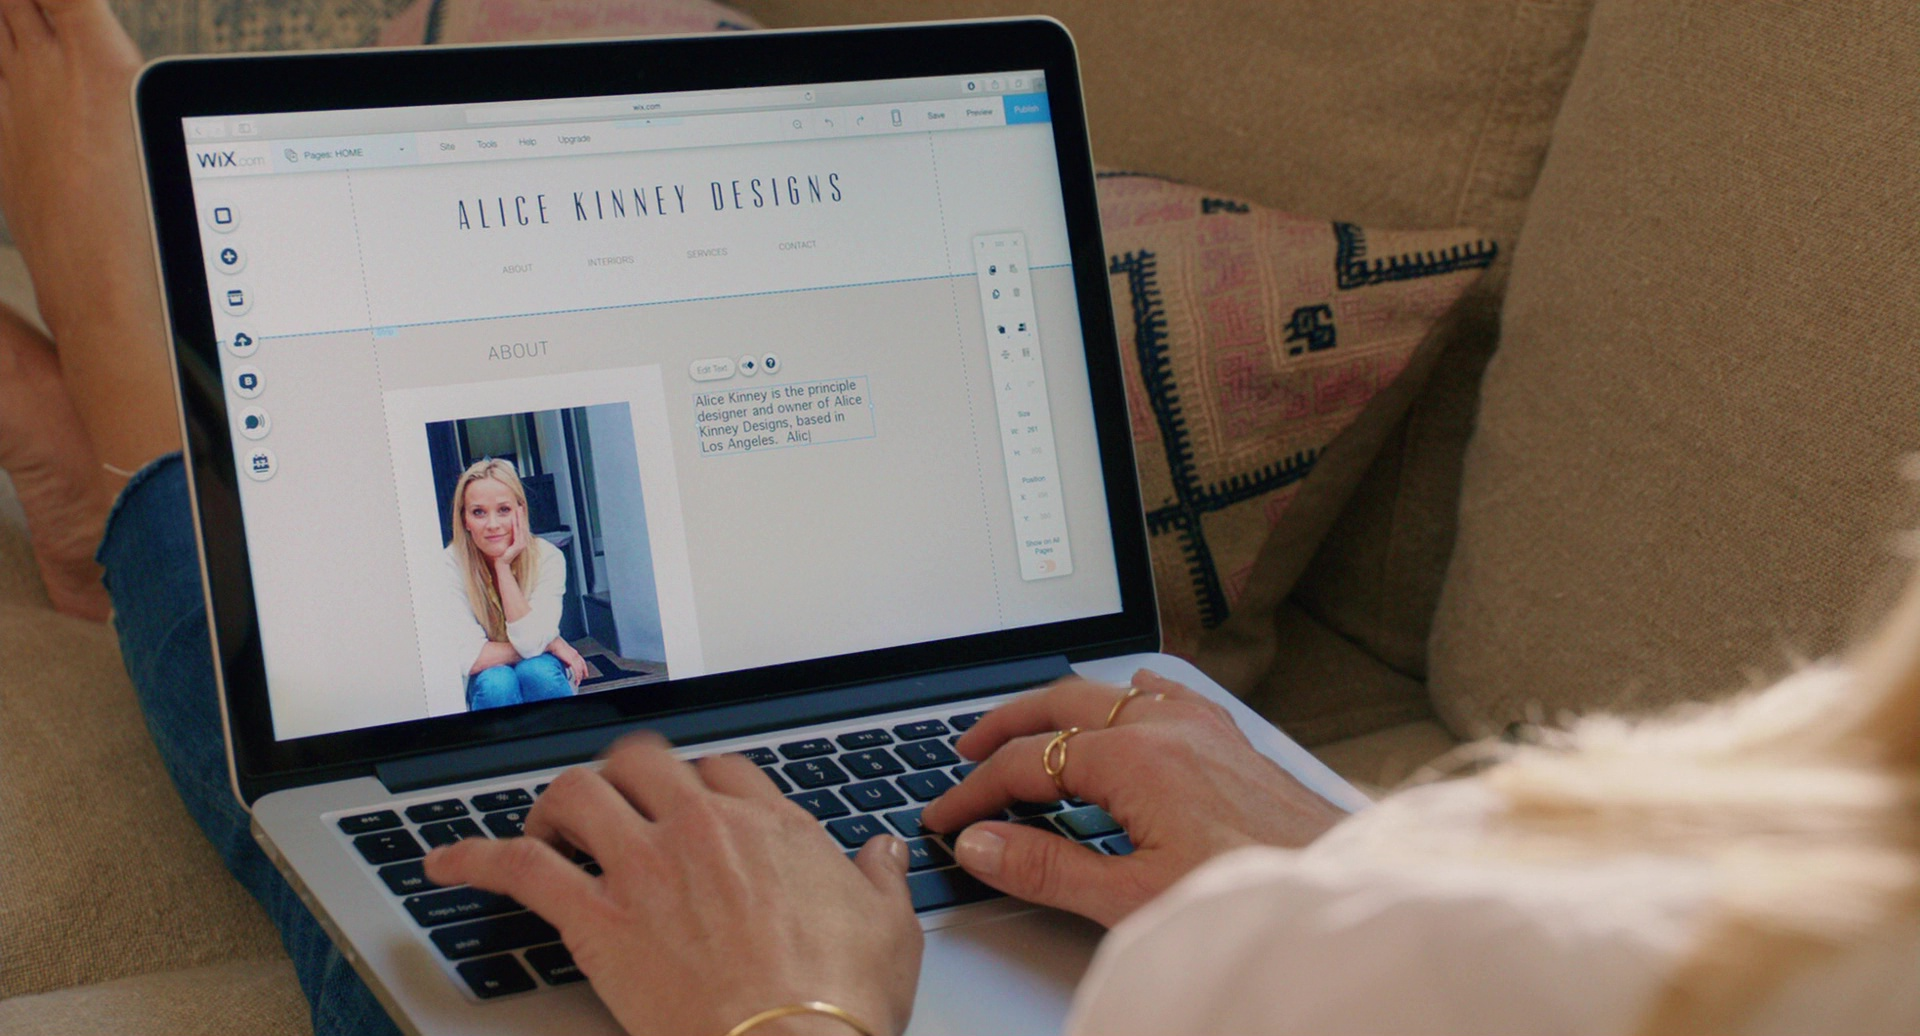 Apple Macbook Laptop Used By Reese Witherspoon In Home